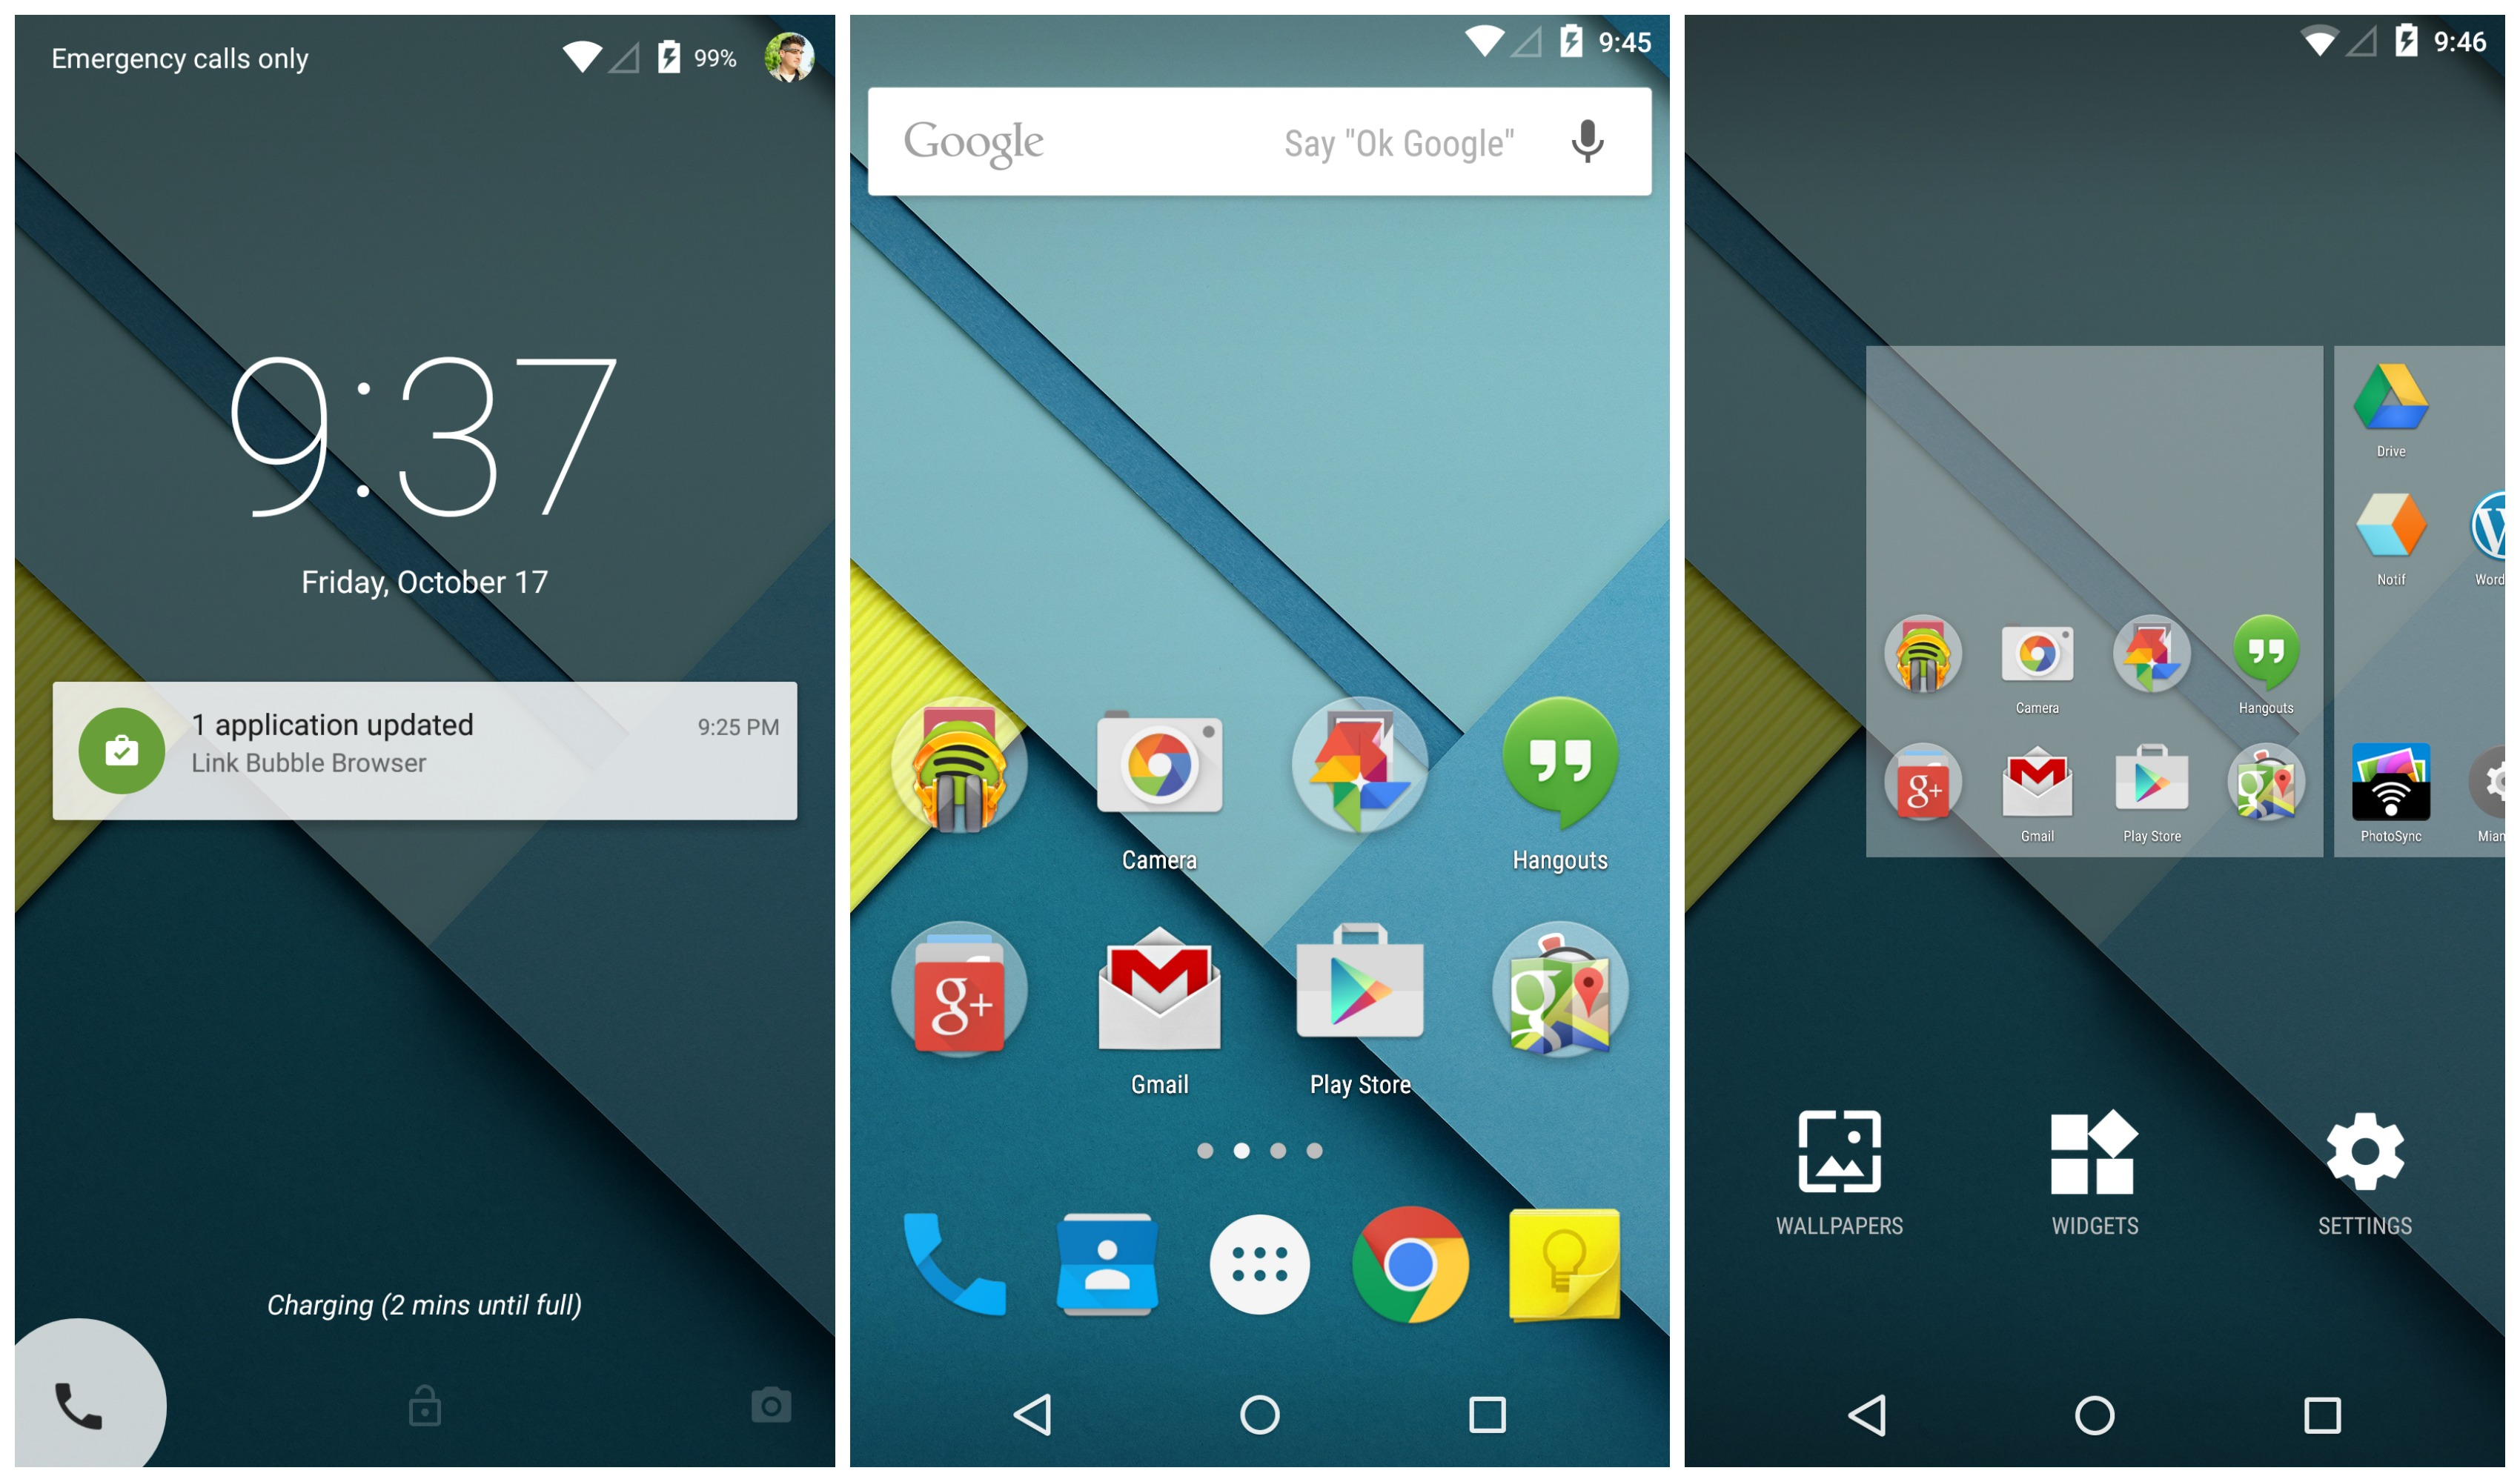 Hands On Android 5 0 Lollipop On The Nexus 5 Video